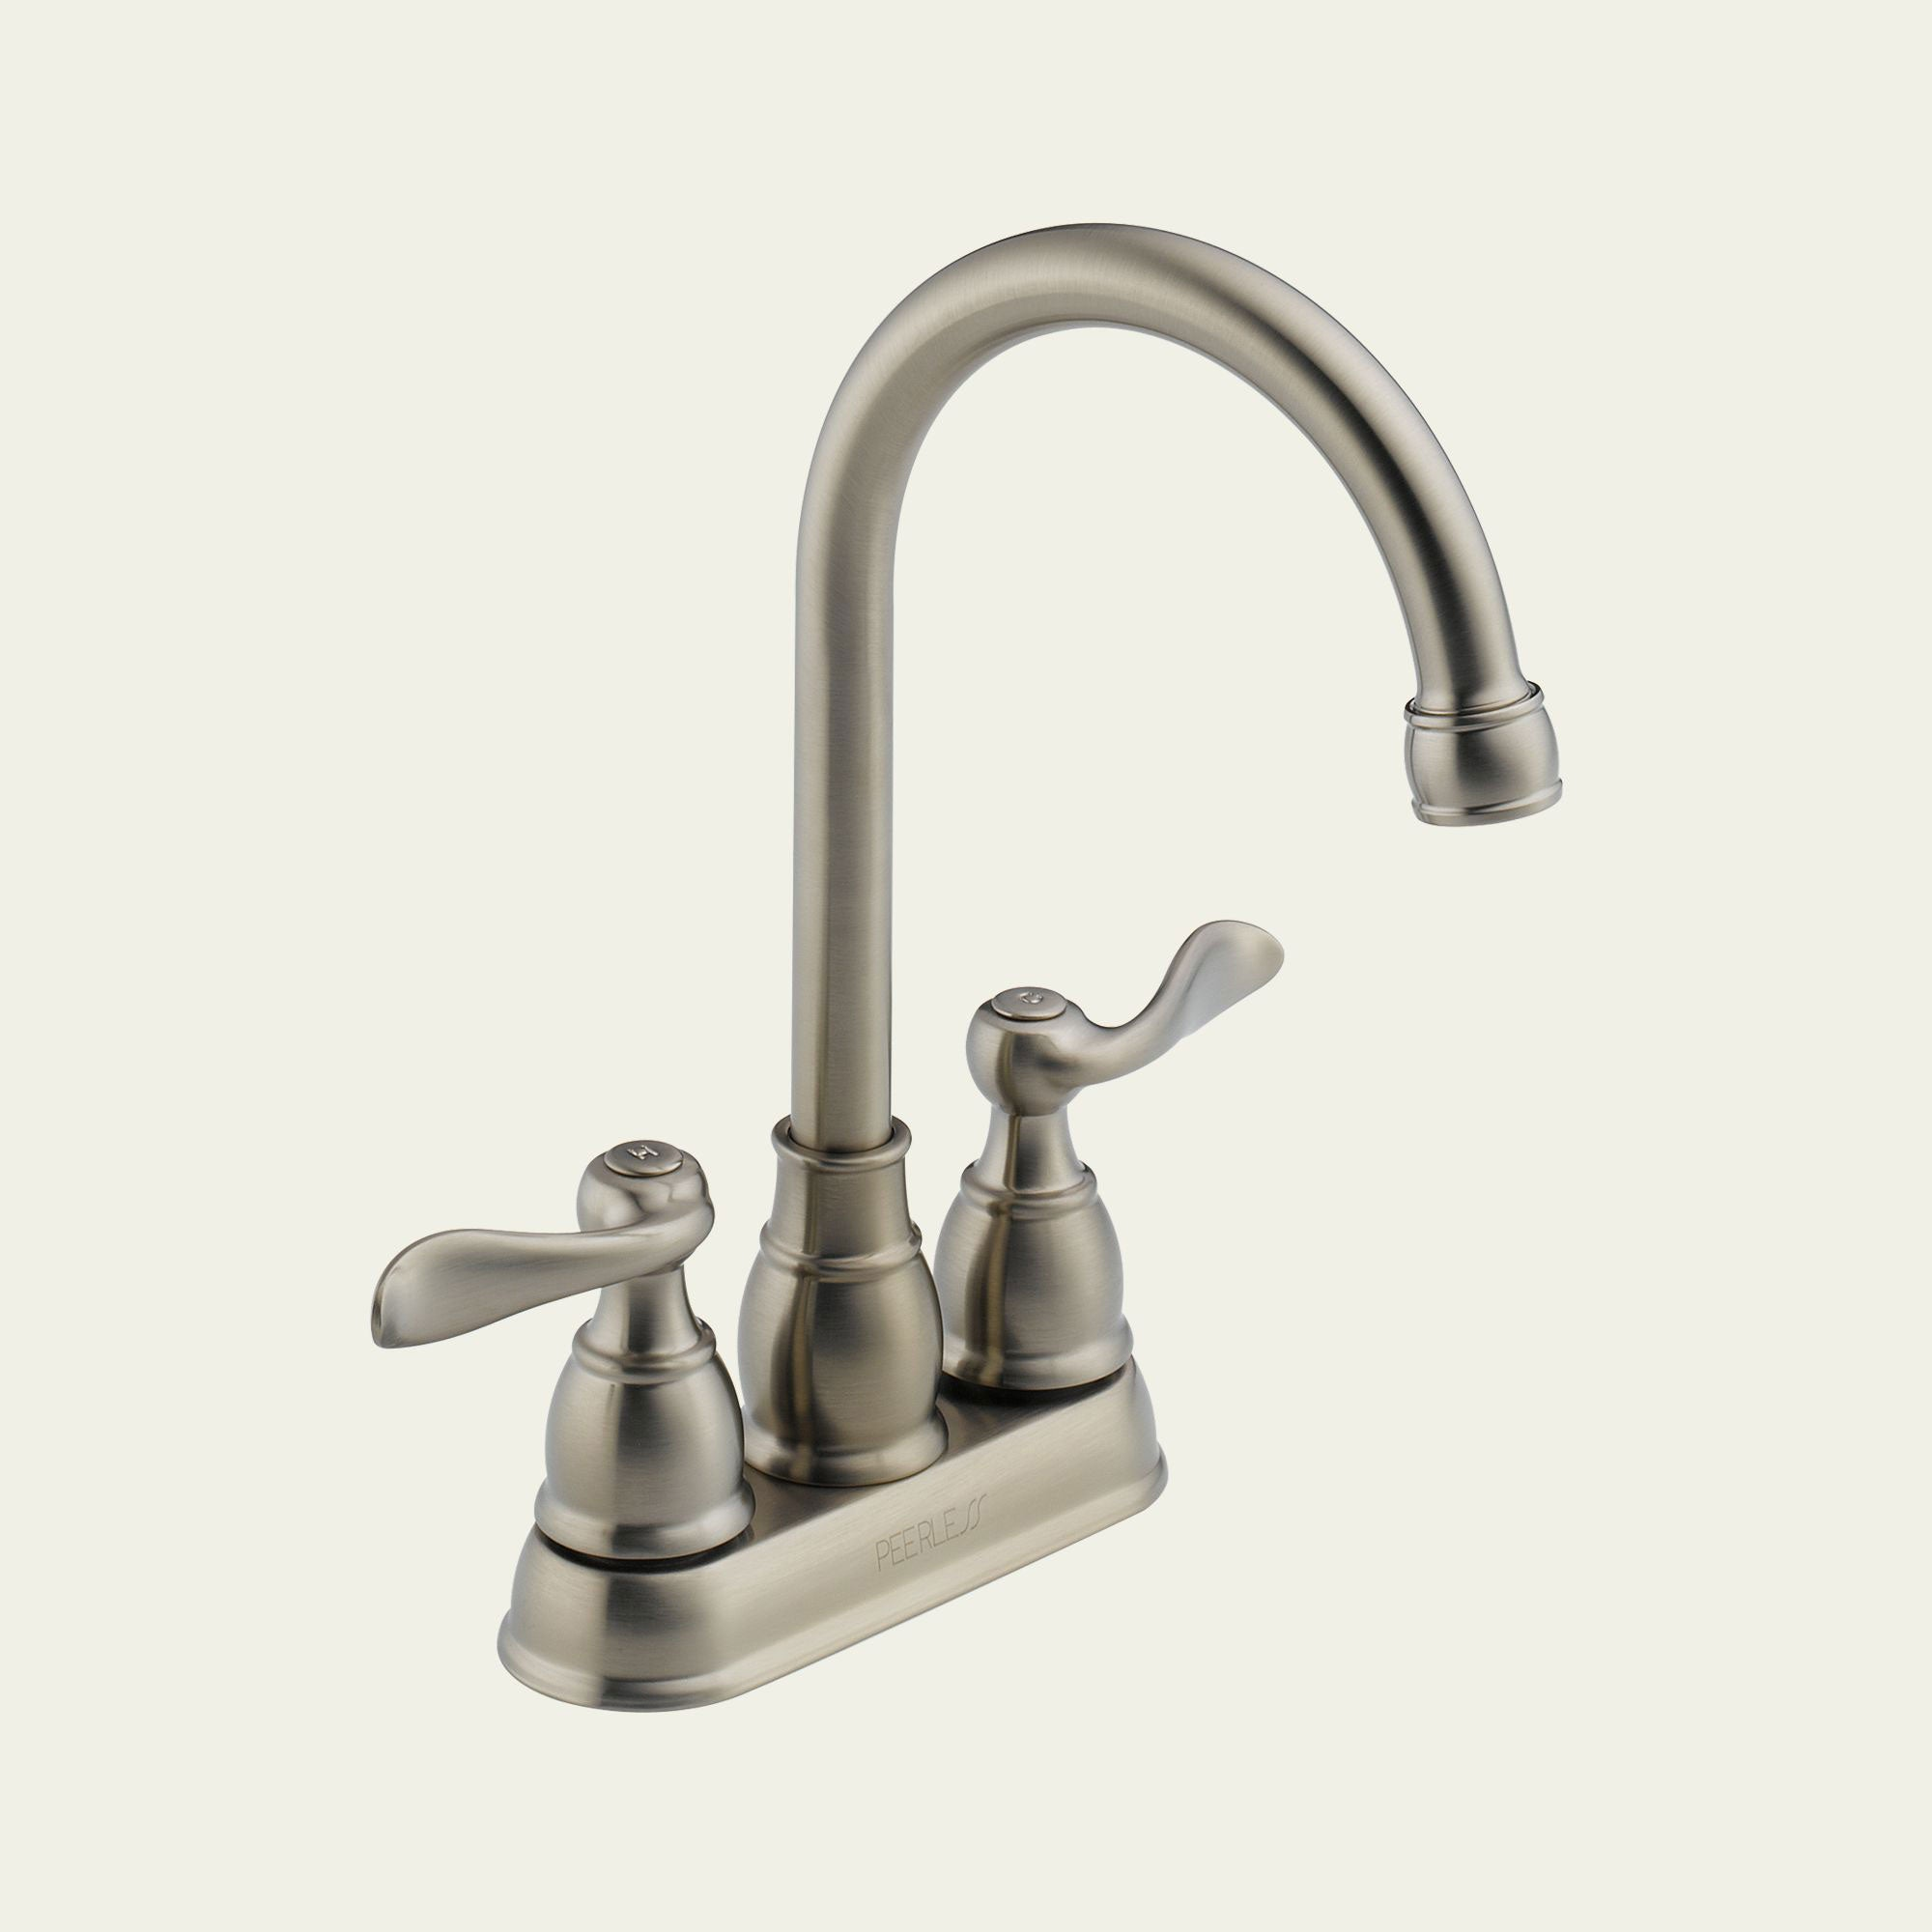 Peerless 2-Handle Stainless Steel Kitchen Faucet Without Drain